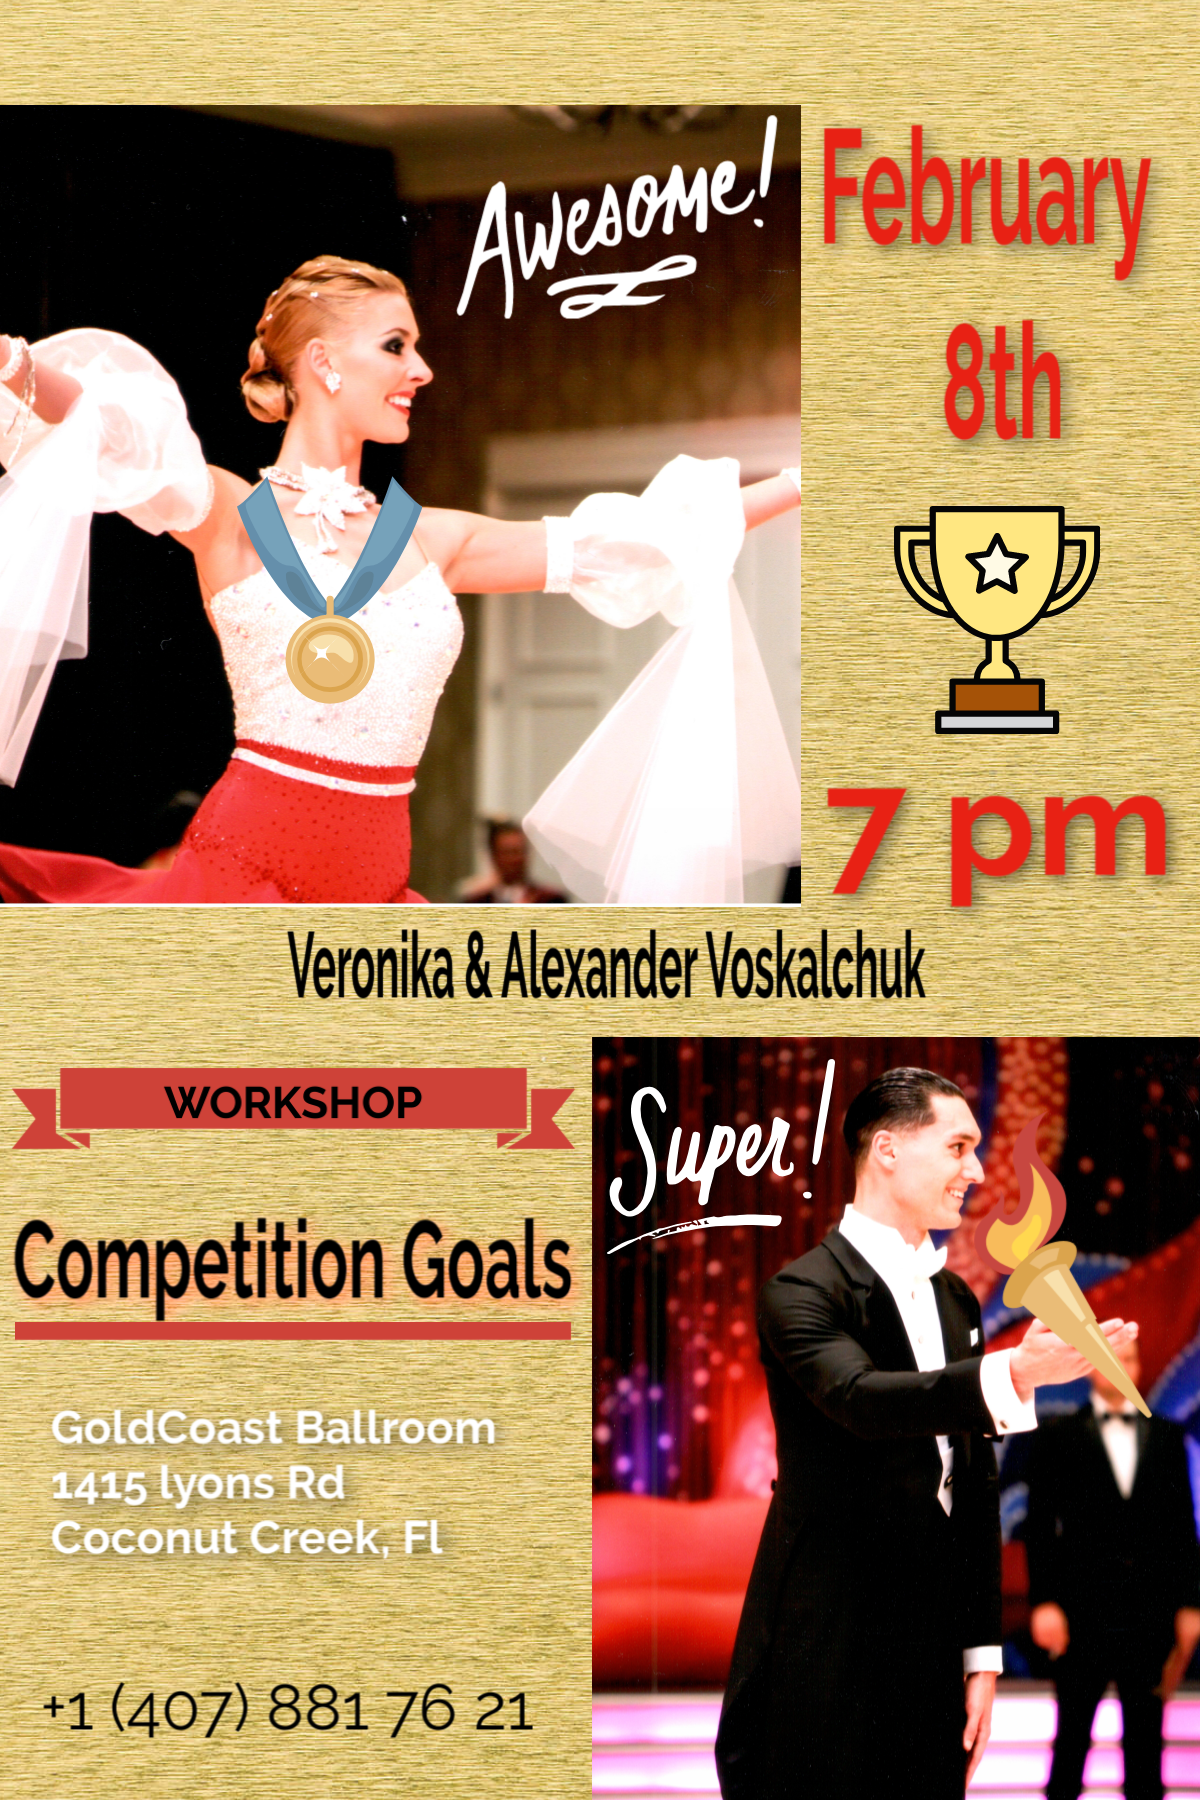 Alexander & Veronika Voskalchuk - Special Workshop on Competition Goals - Friday, February 8, 2019 - 7:00 PM - 8:00 PM